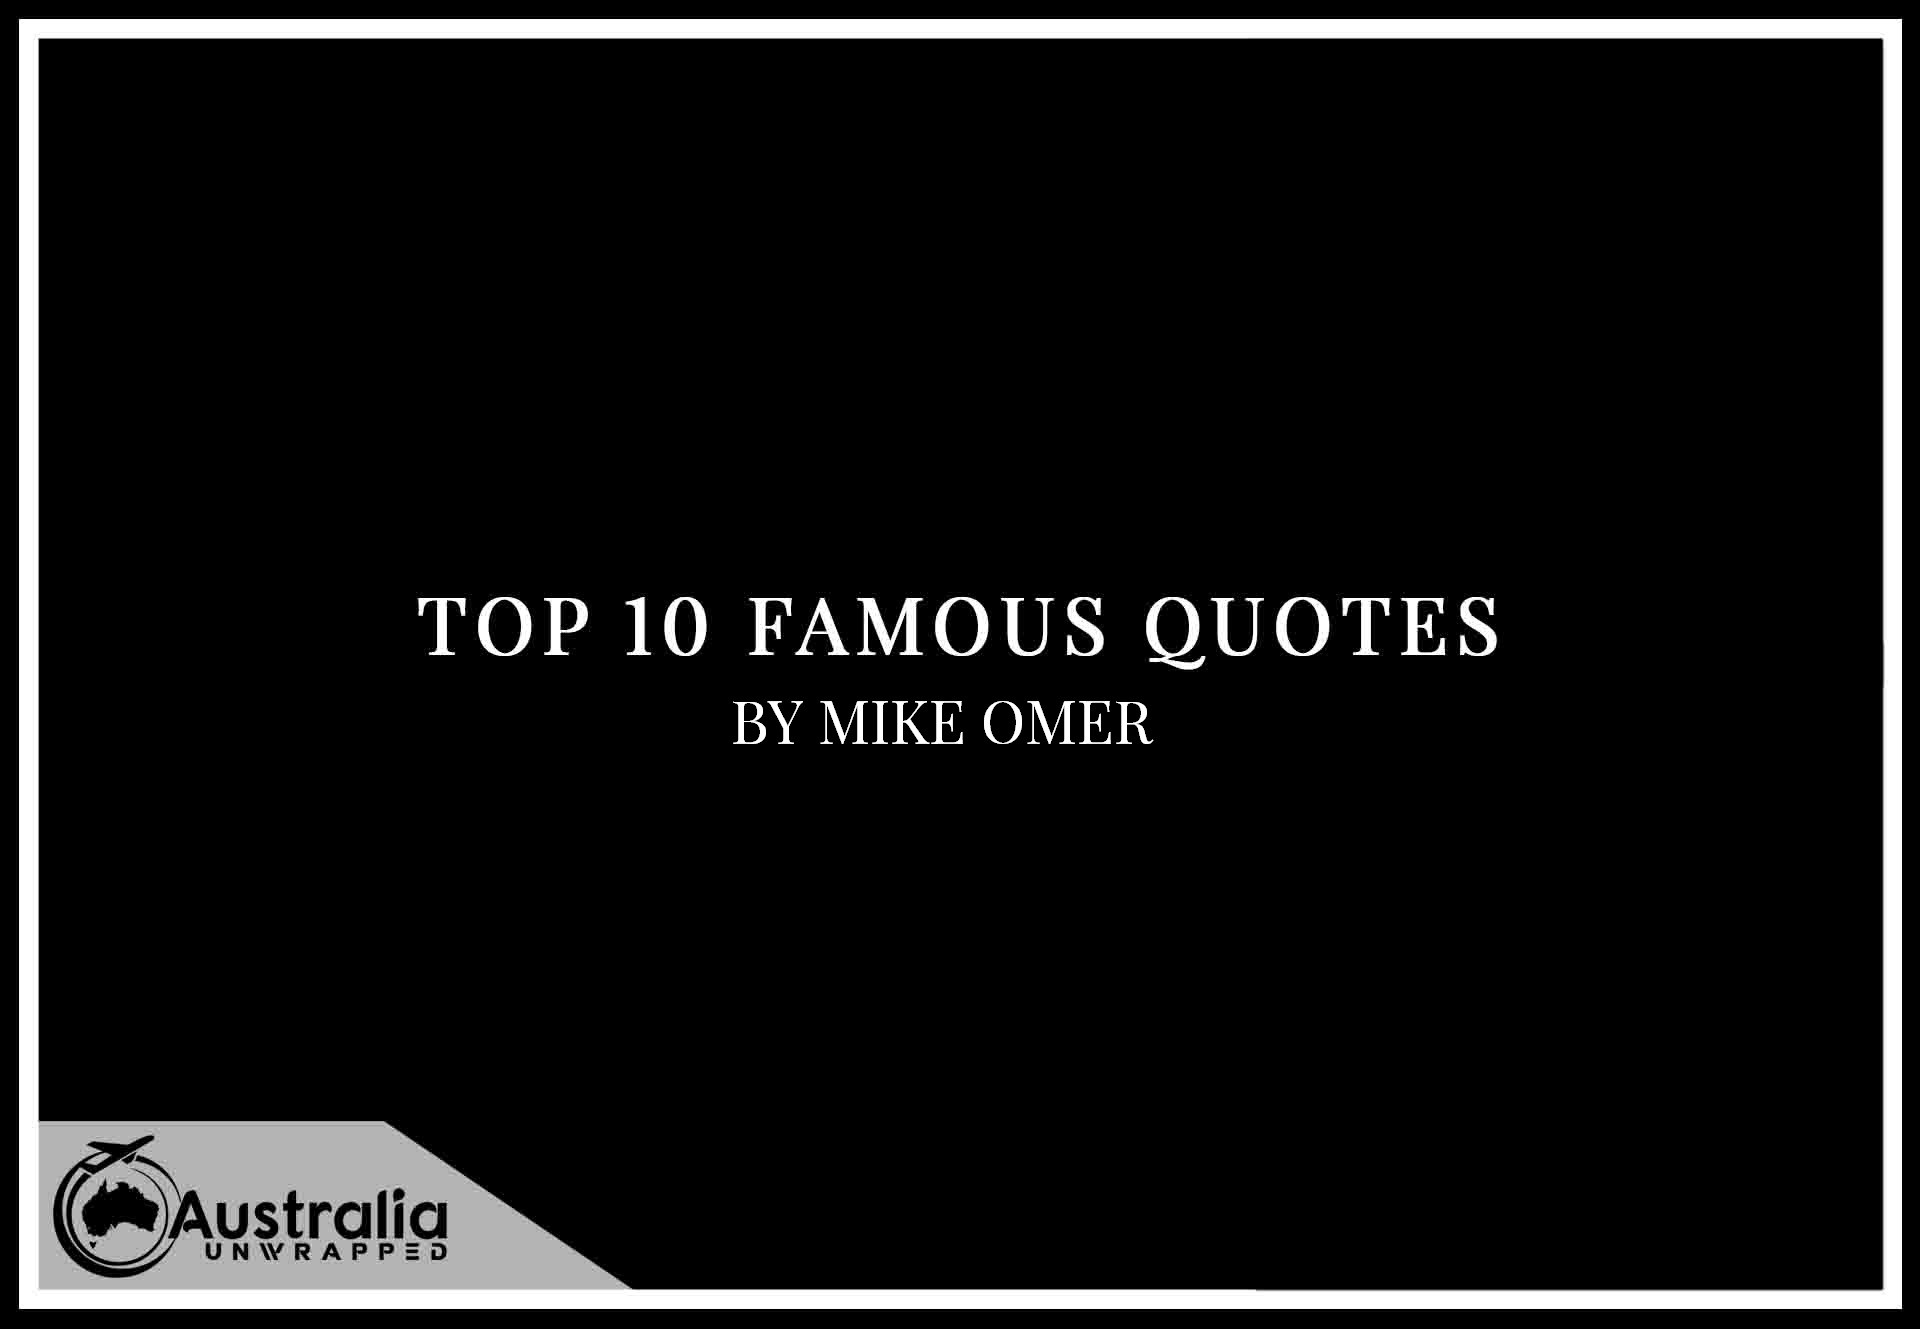 Top 10 Famous Quotes by Author Mike Omer